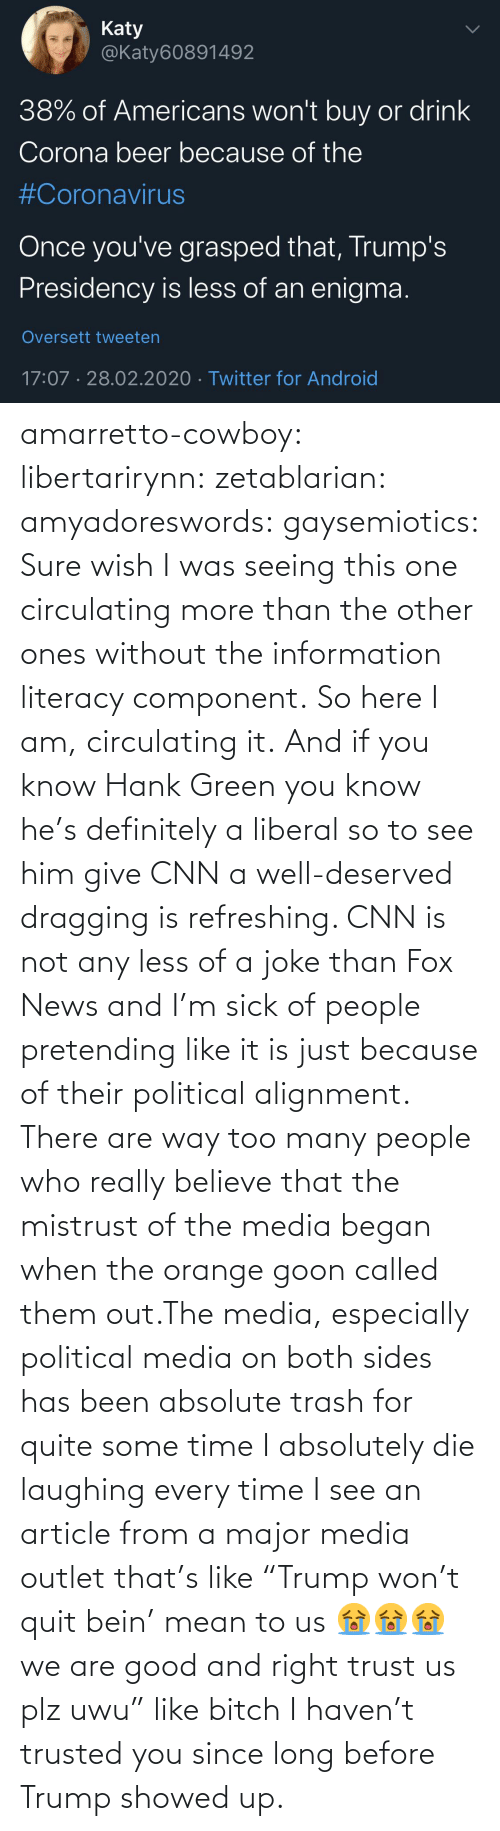 "laughing: amarretto-cowboy:  libertarirynn:  zetablarian:  amyadoreswords:   gaysemiotics:       Sure wish I was seeing this one circulating more than the other ones without the information literacy component. So here I am, circulating it.    And if you know Hank Green you know he's definitely a liberal so to see him give CNN a well-deserved dragging is refreshing. CNN is not any less of a joke than Fox News and I'm sick of people pretending like it is just because of their political alignment.   There are way too many people who really believe that the mistrust of the media began when the orange goon called them out.The media, especially political media on both sides has been absolute trash for quite some time   I absolutely die laughing every time I see an article from a major media outlet that's like ""Trump won't quit bein' mean to us 😭😭😭 we are good and right trust us plz uwu"" like bitch I haven't trusted you since long before Trump showed up."